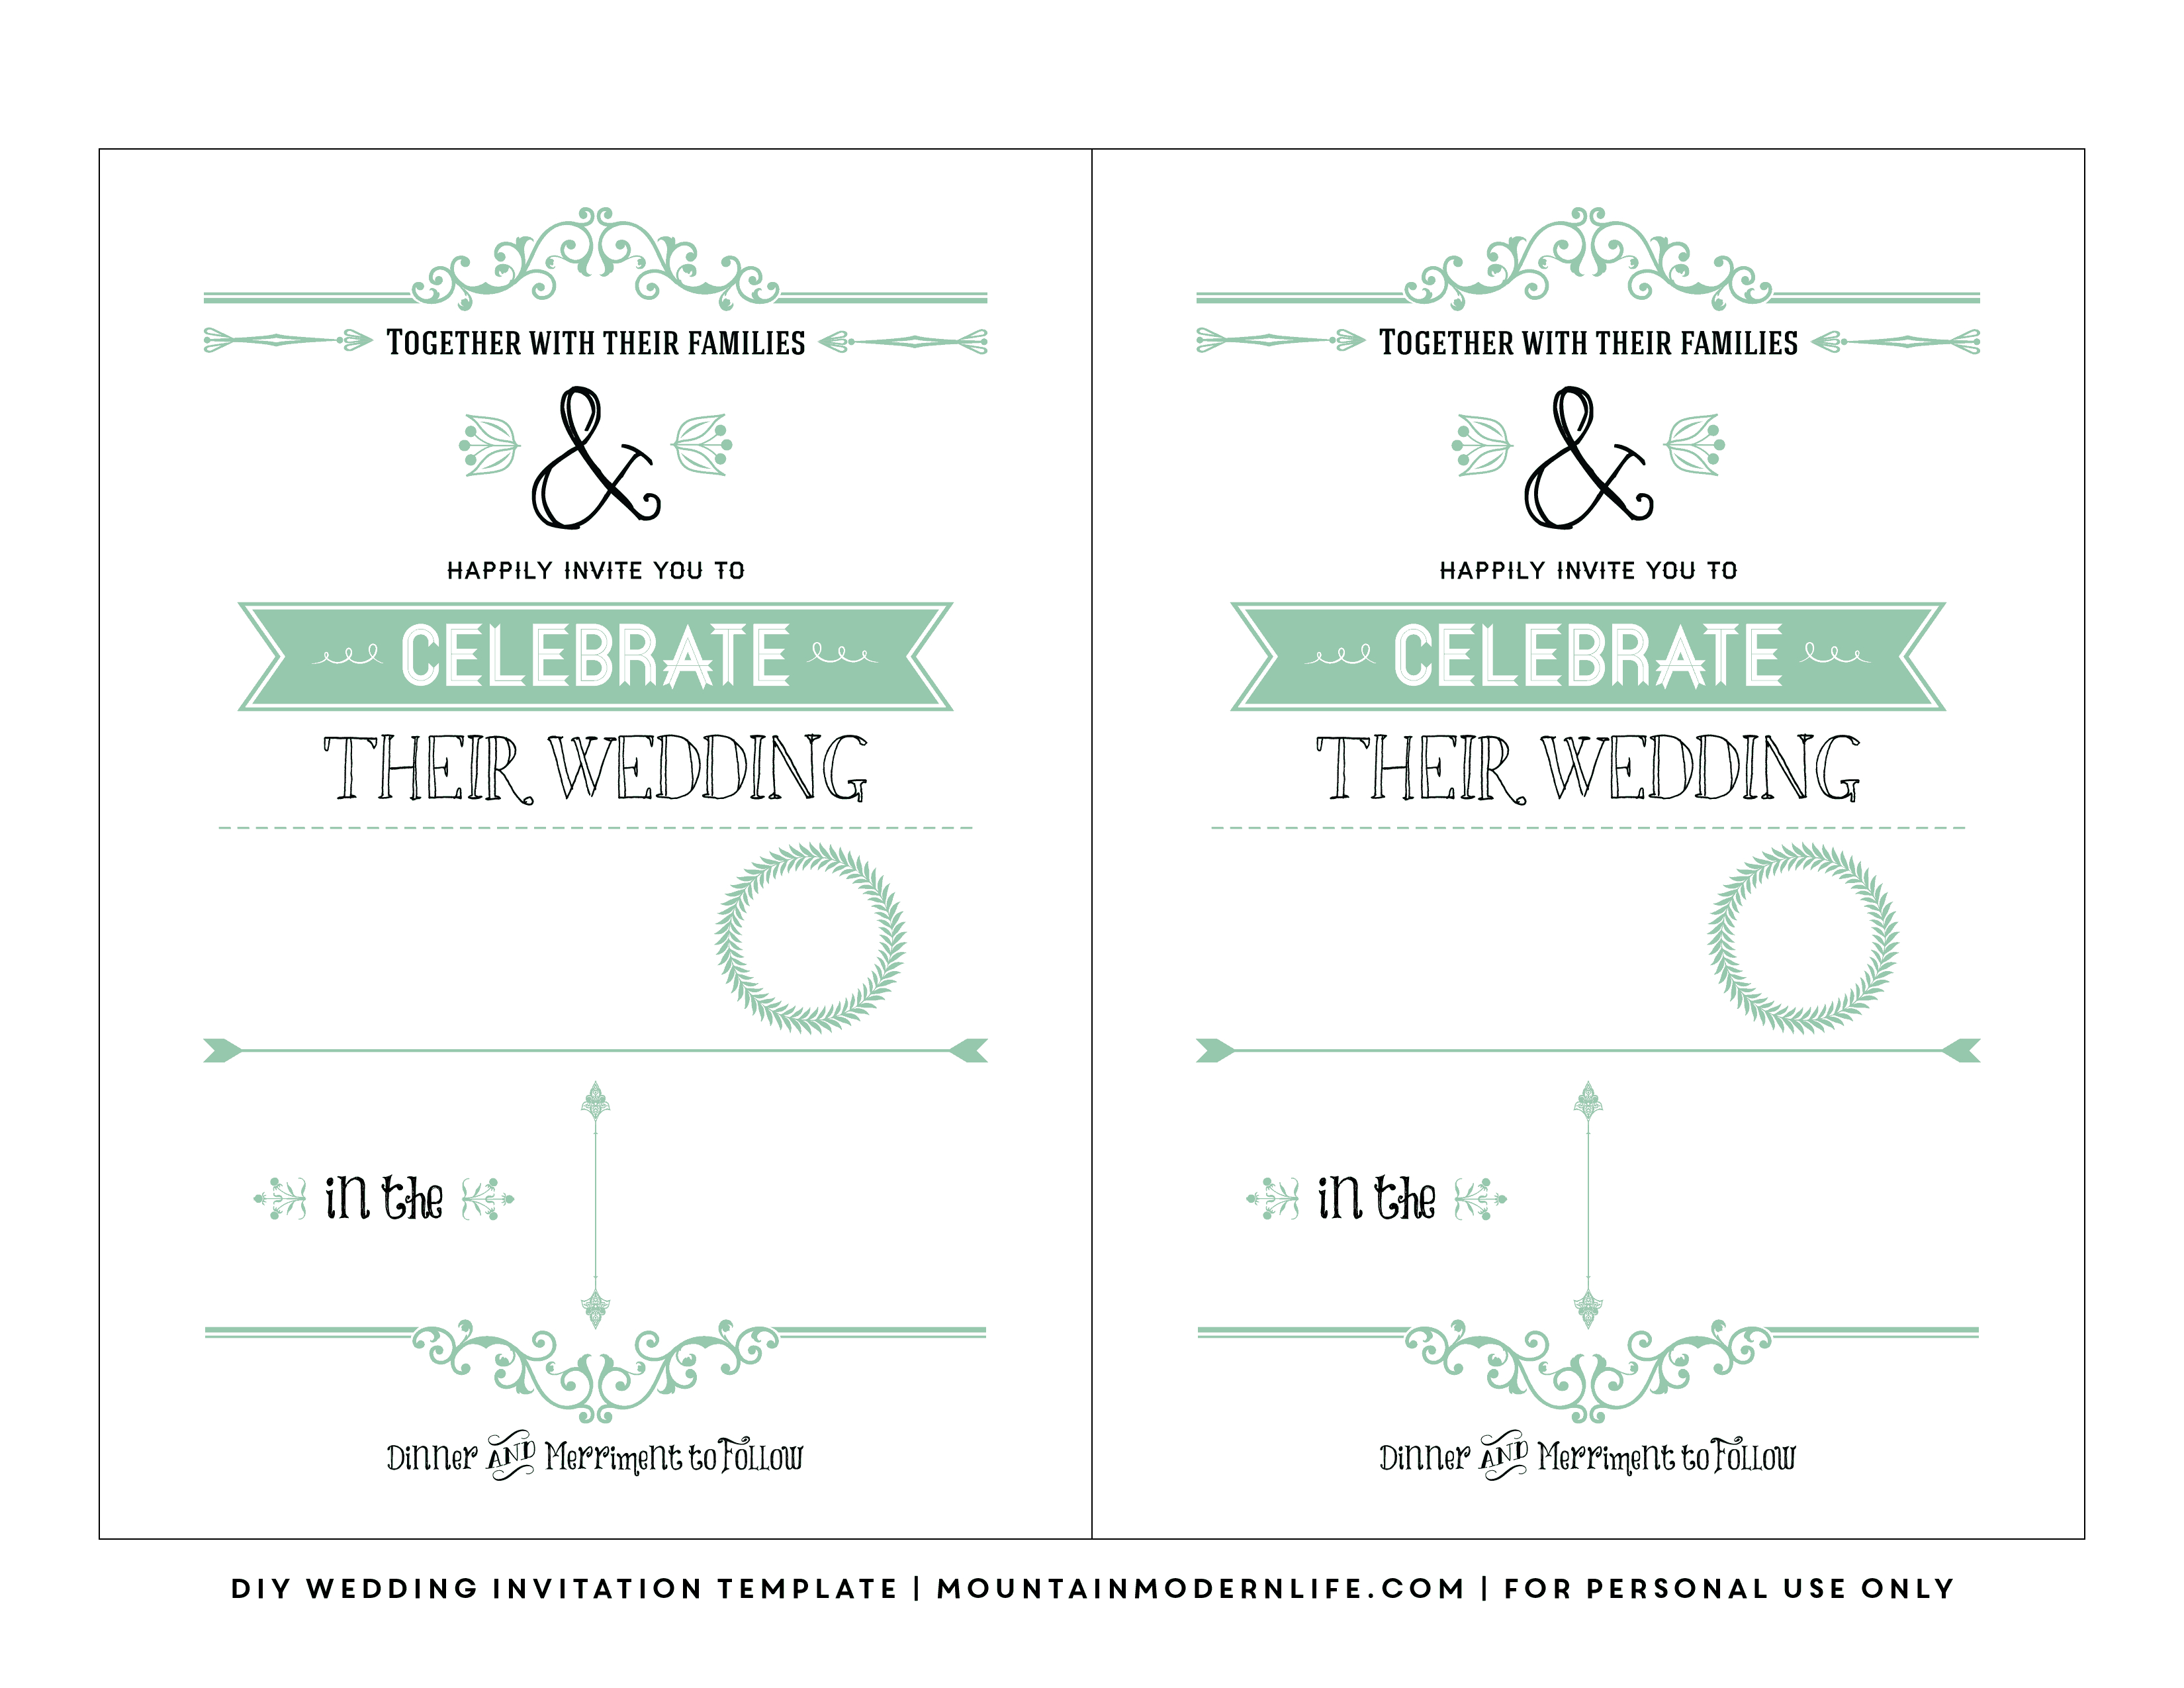 Free Wedding Invitation Template | Mountainmodernlife - Free Printable Wedding Invitations Templates Downloads